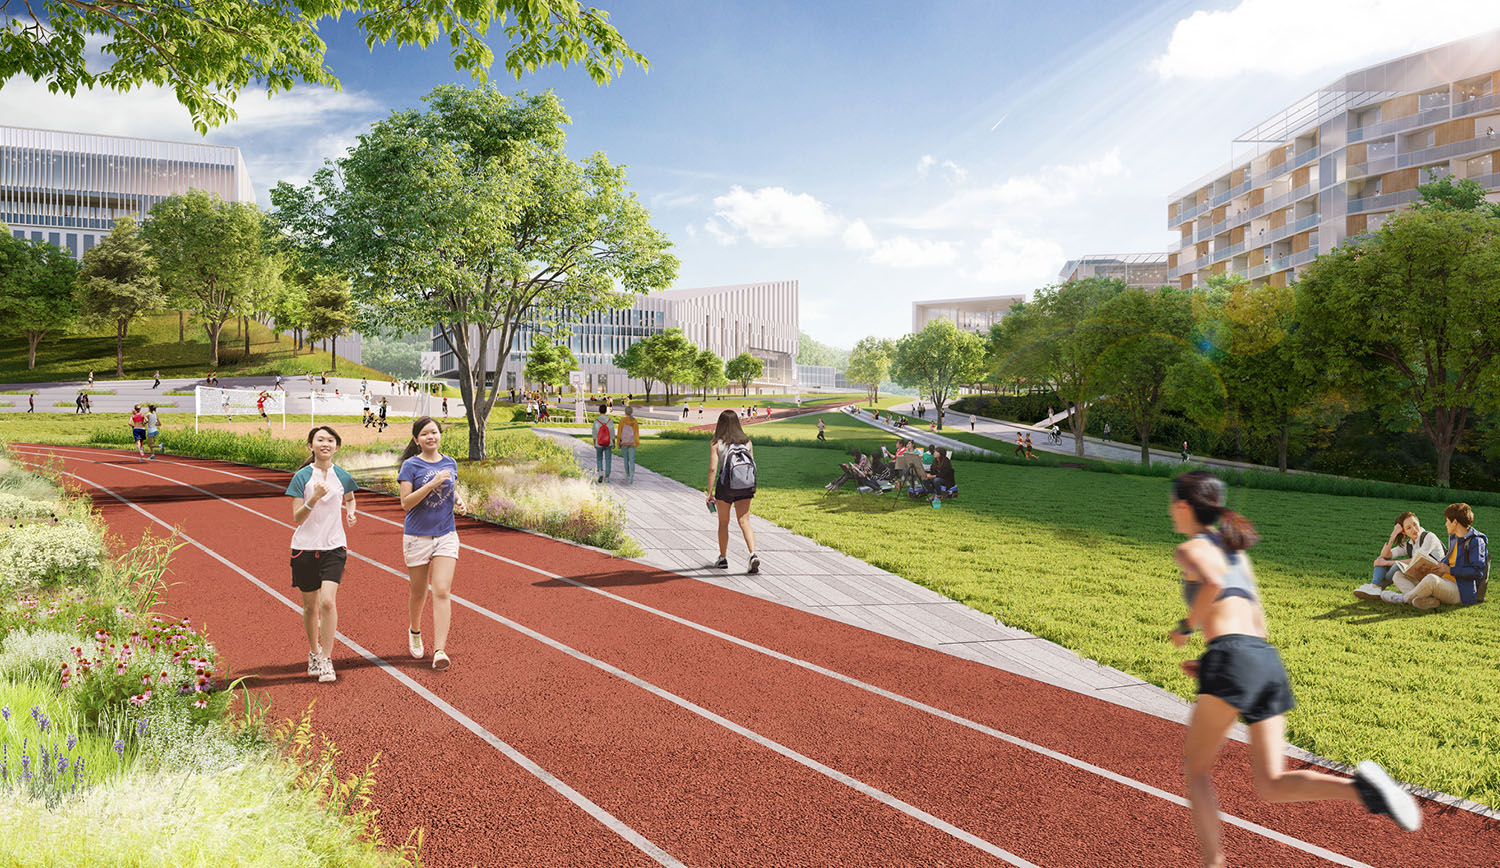 A hierarchy of trail system connects the entire campus while providing students with varied spaces for movement, recreation, and congregation. SASAKI